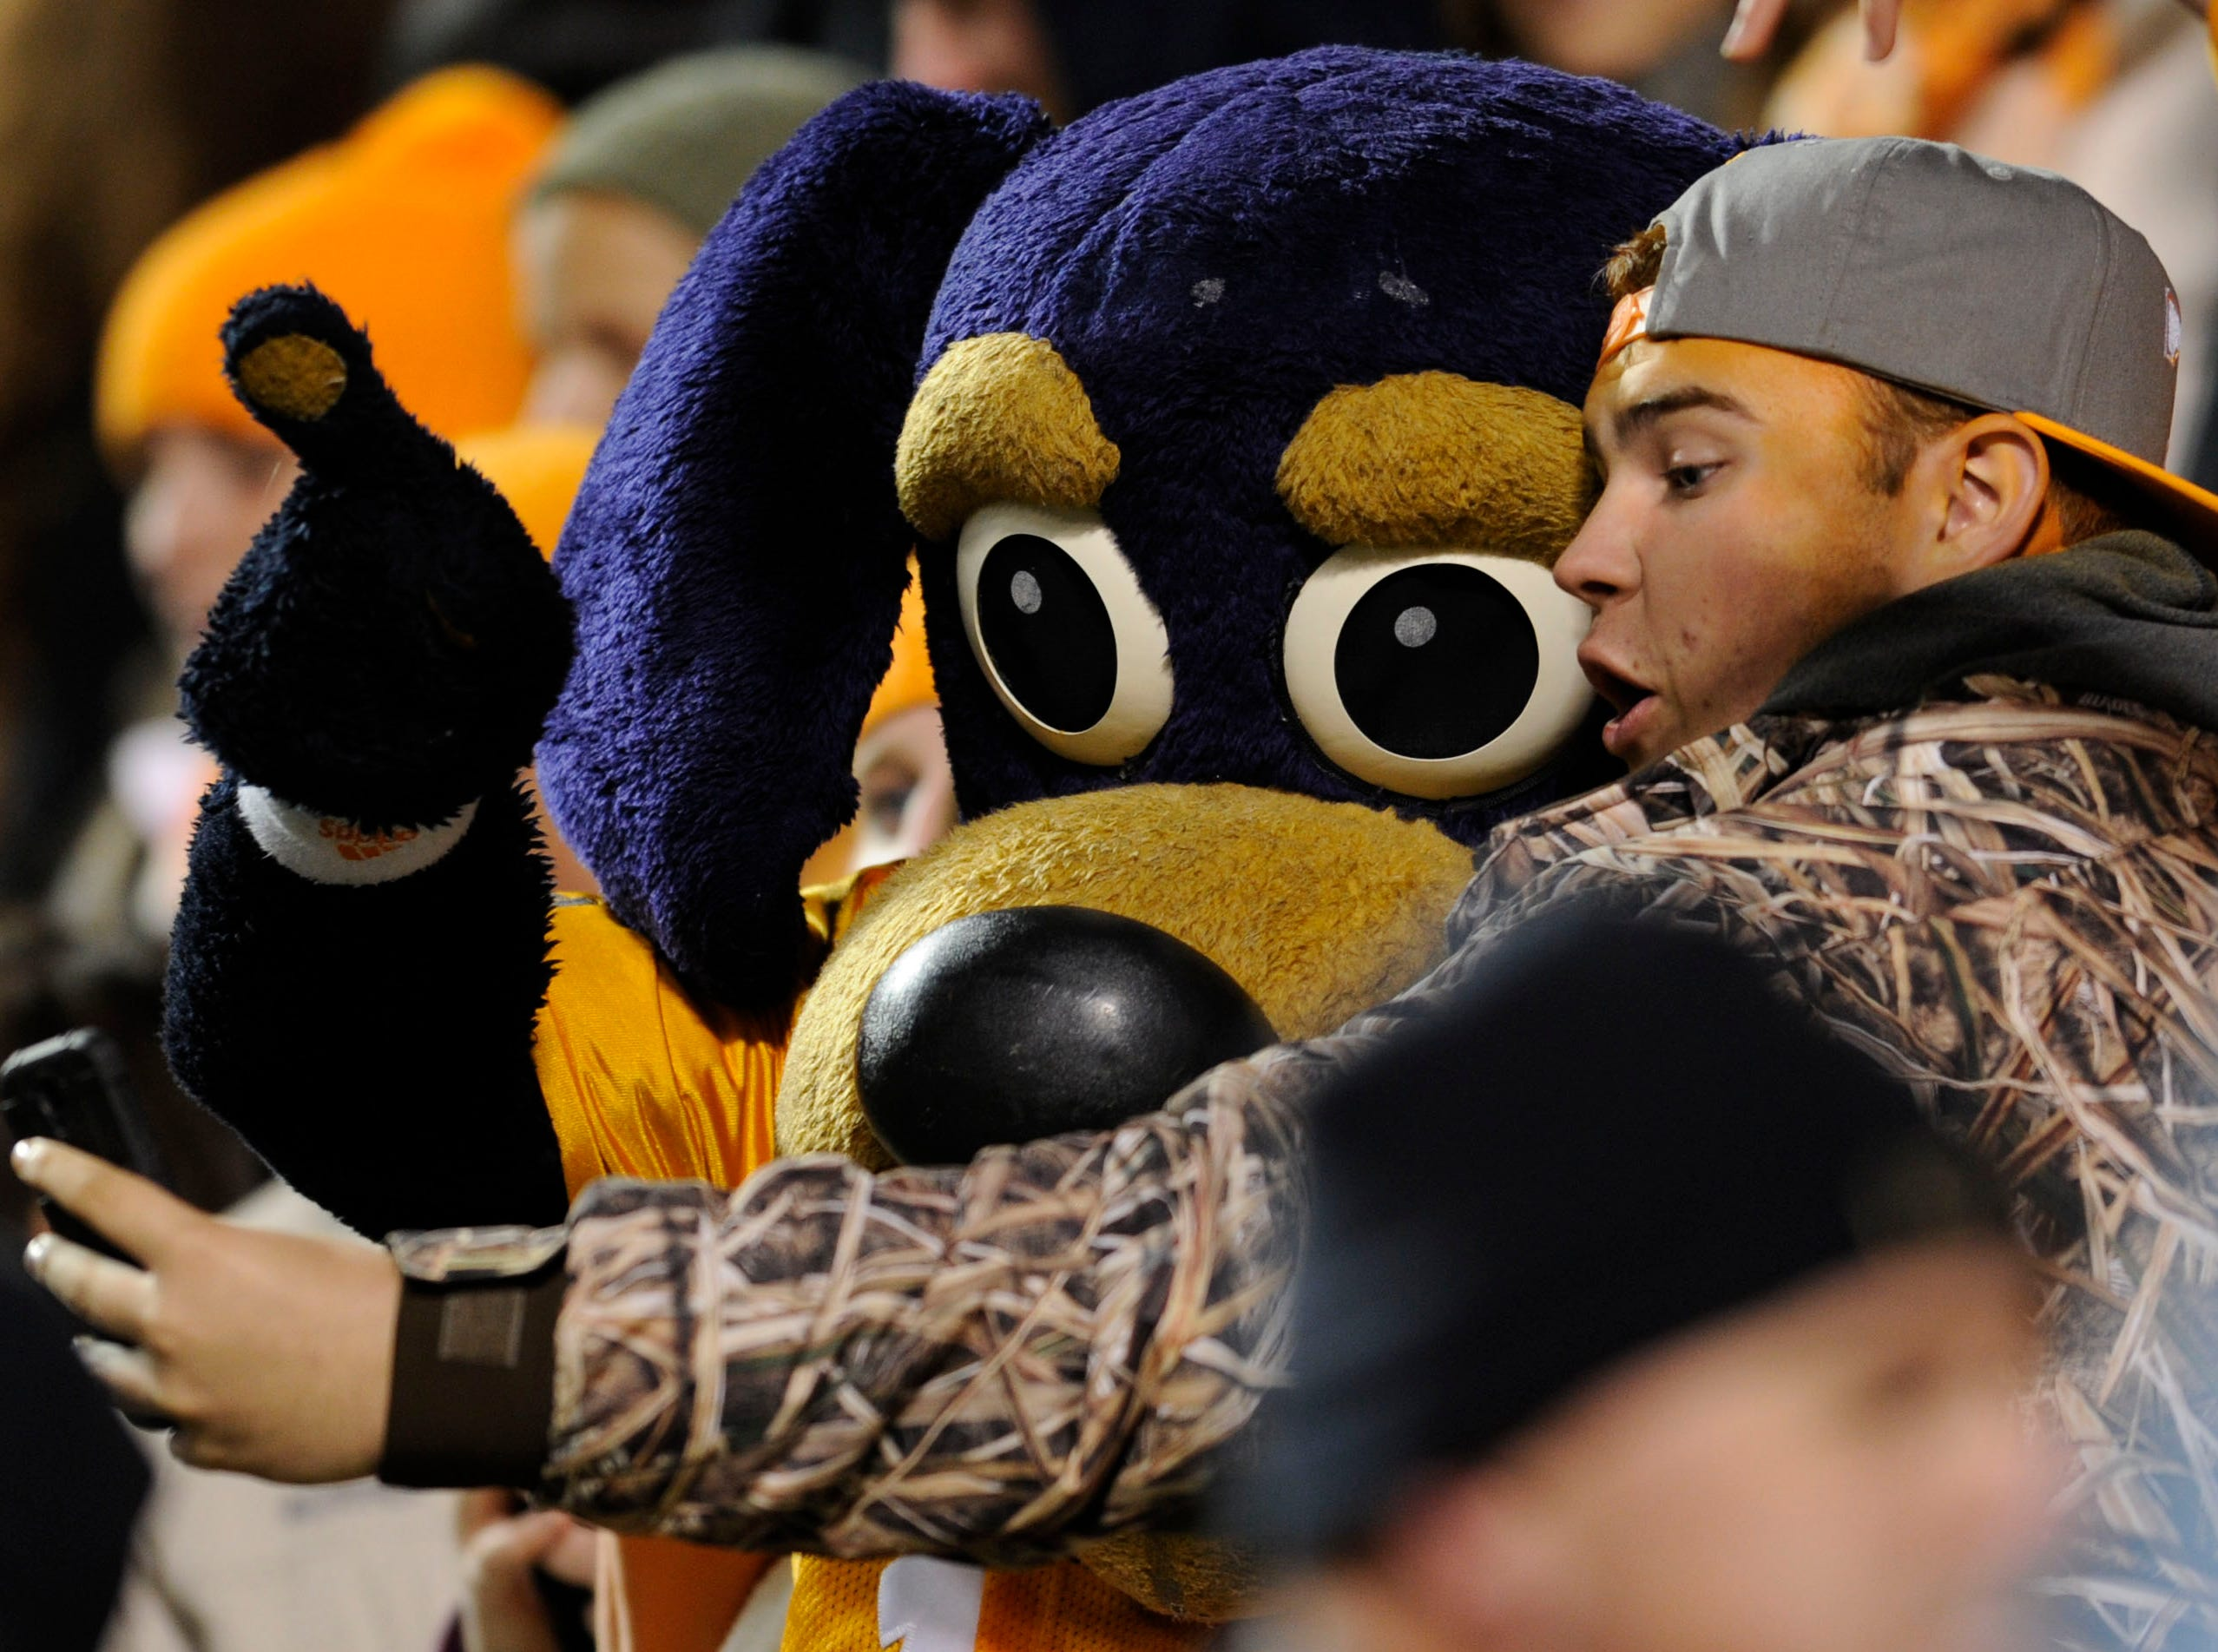 A Tennessee fan poses with Smokey Jr. mascot during the college football game against Kentucky at Neyland Stadium Saturday, Nov. 15, 2014 in Knoxville, TN. UT won the game 50-16, bringing their record to 5-5.